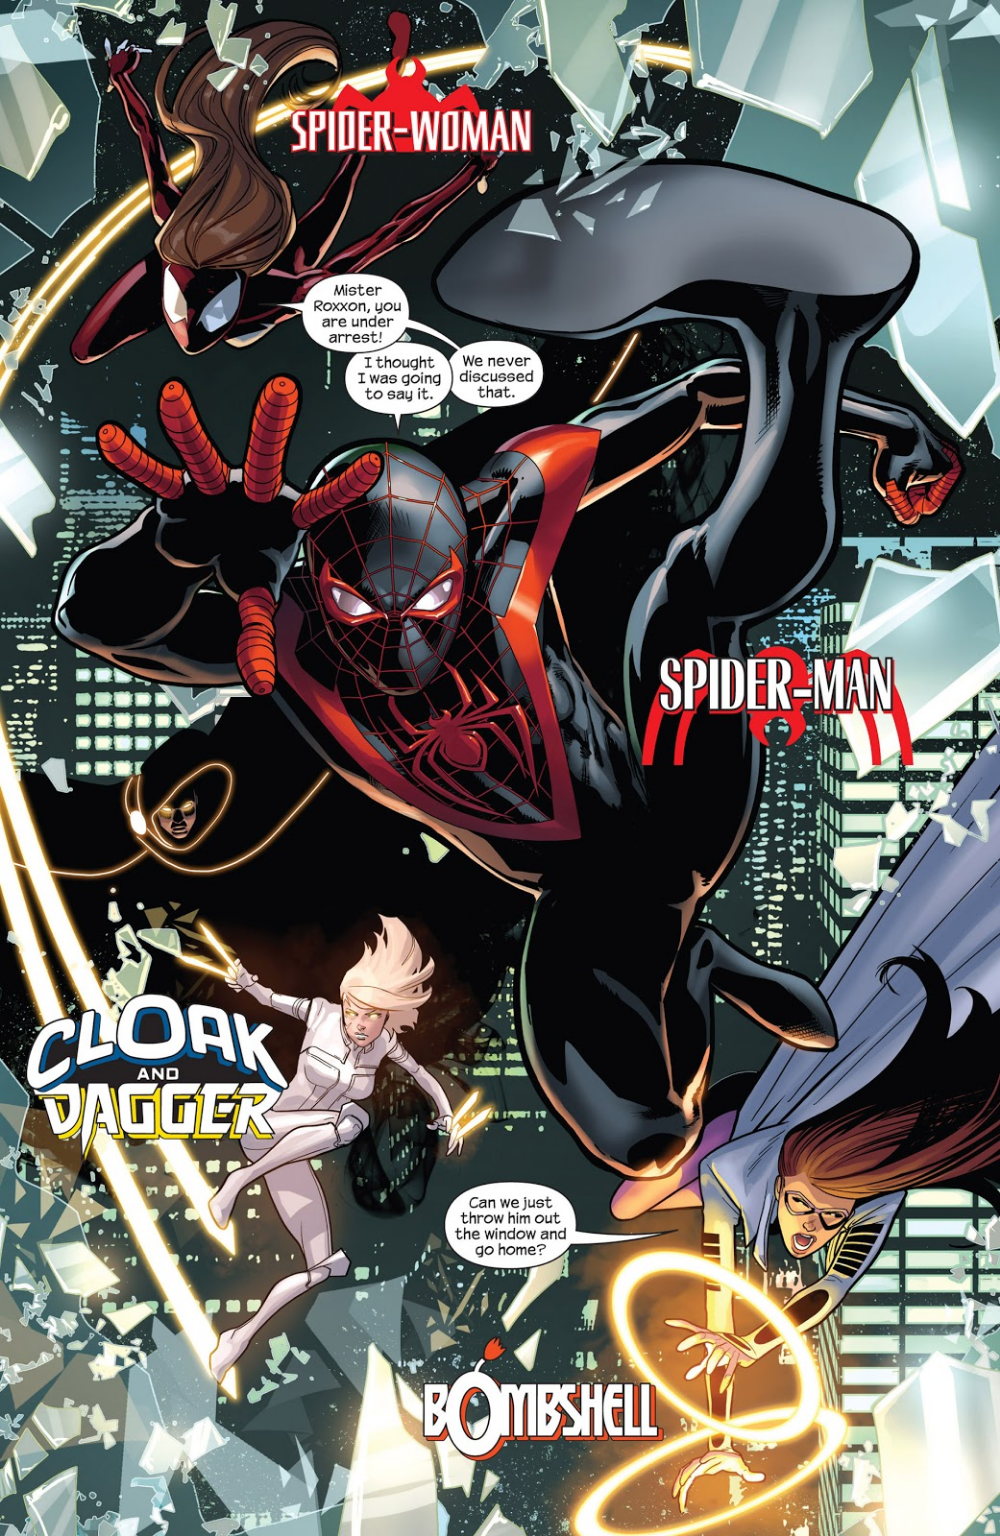 Ultimate Comics Spider Man 2011 Issue 28 Read Ultimate Comics Spider Man 2011 Issue 28 Comic Online In High Qualit Spiderman Comic Comics Spiderman Art